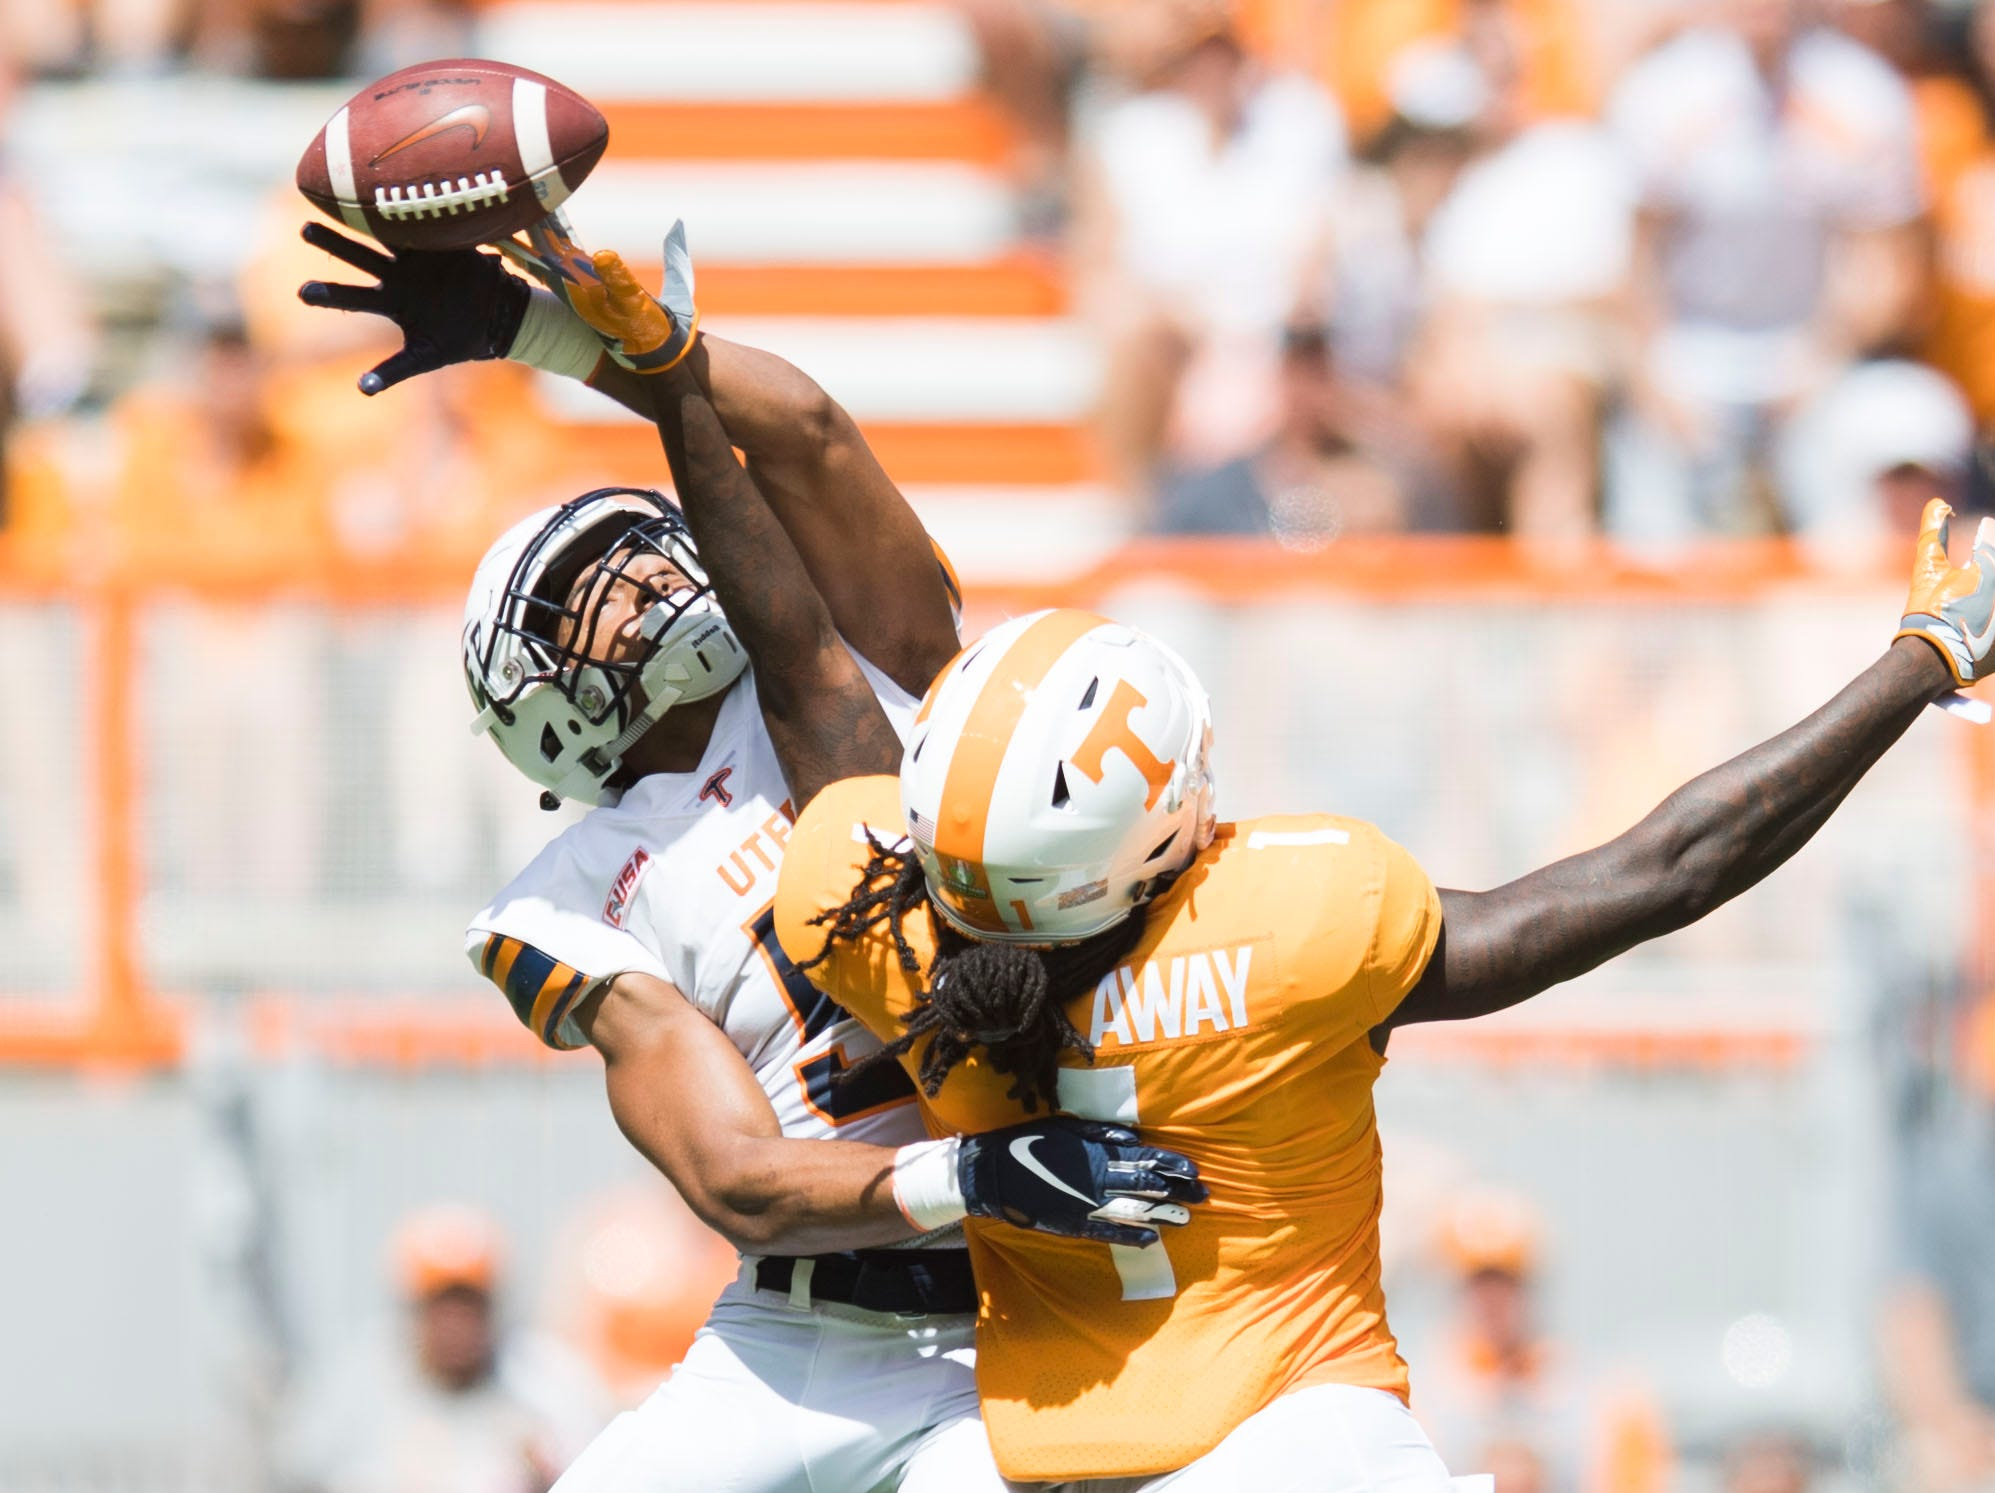 Tennessee wide receiver Marquez Callaway (1) and UTEP defensive back Nik Needham (5) collide during a play during the second half of a game between UT and UTEP in Neyland Stadium Sept. 15, 2018.